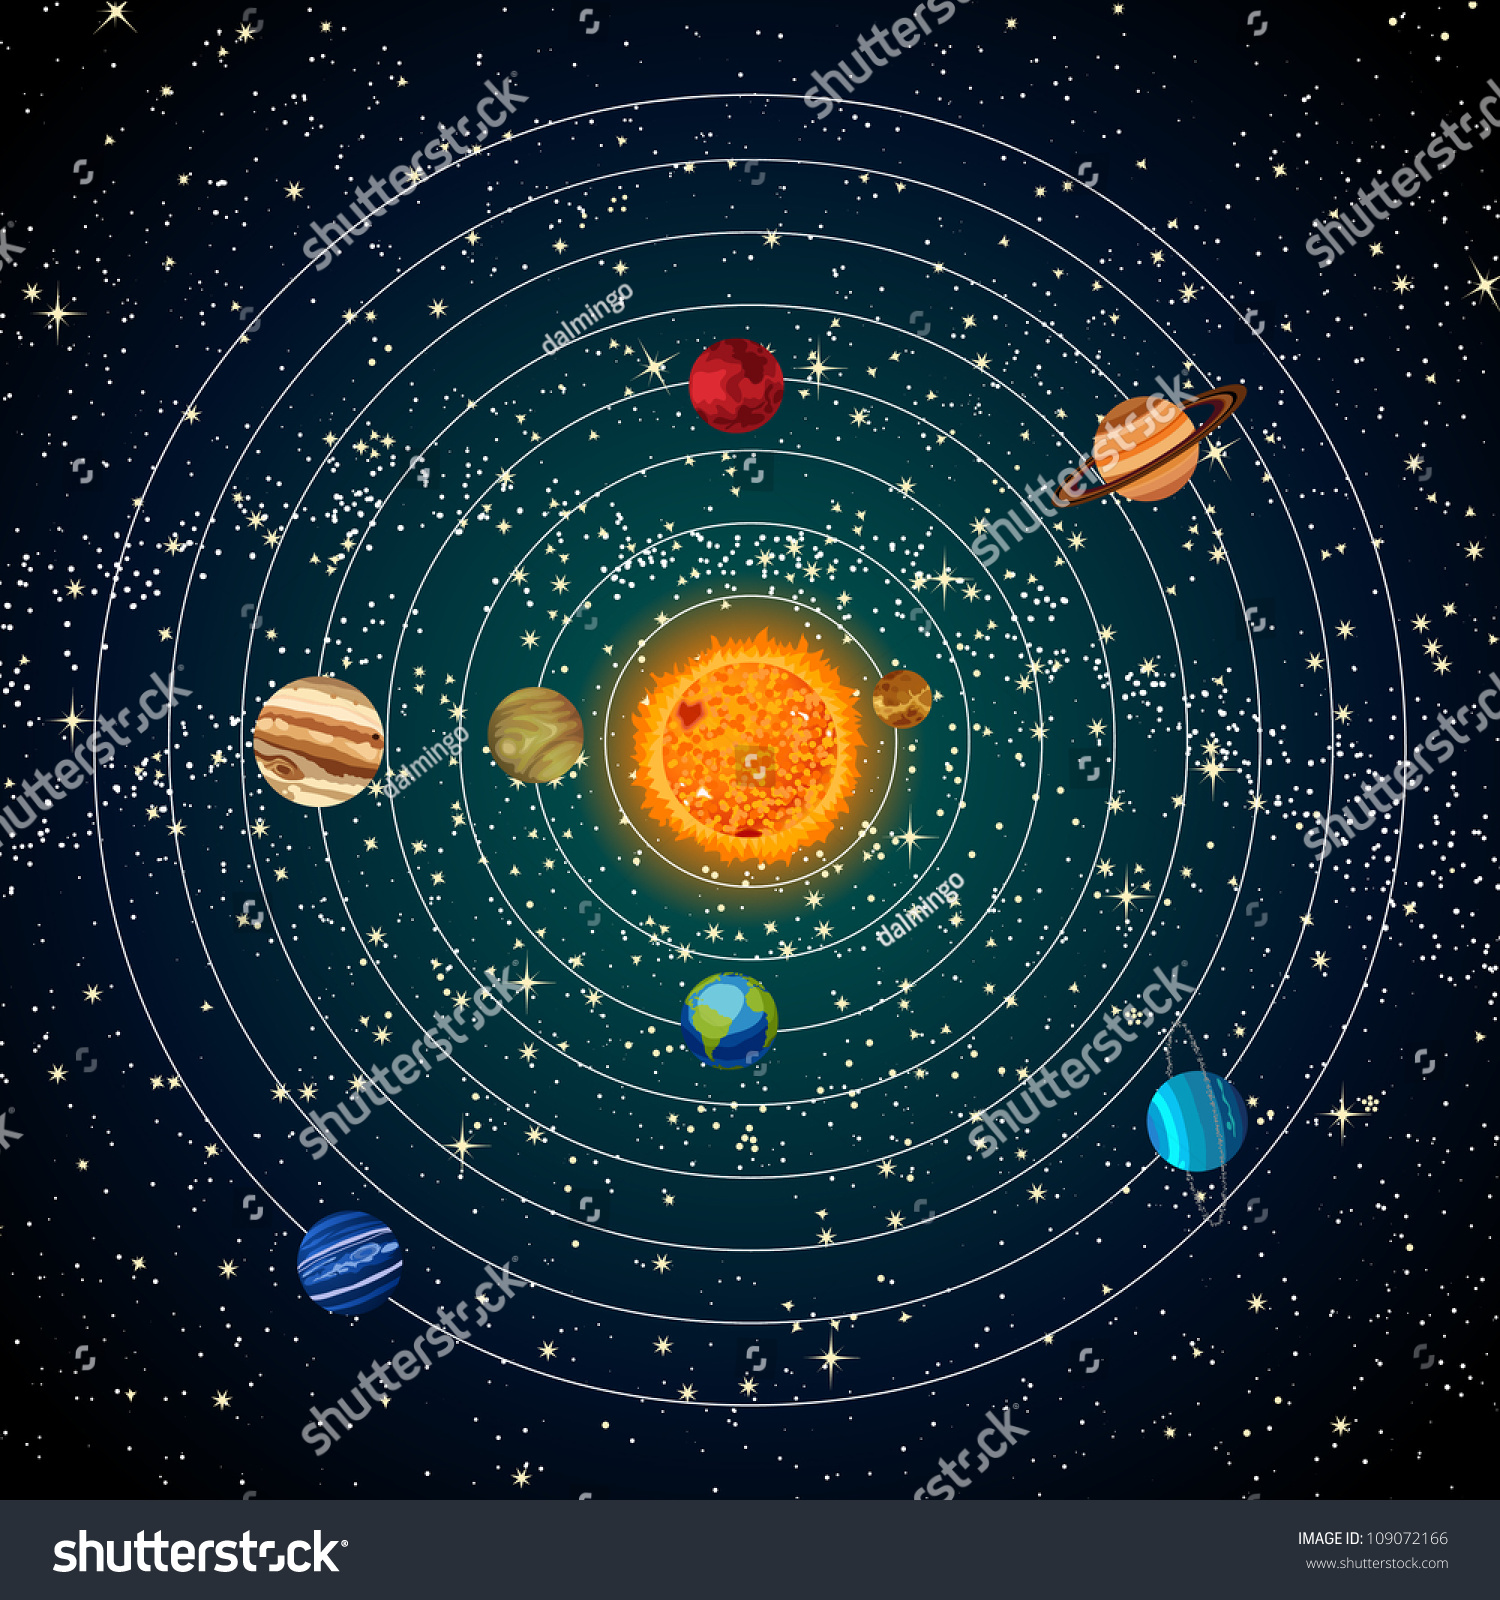 Worksheet The Sun And Stars solar system sun planets stars stock illustration 109072166 with and stars